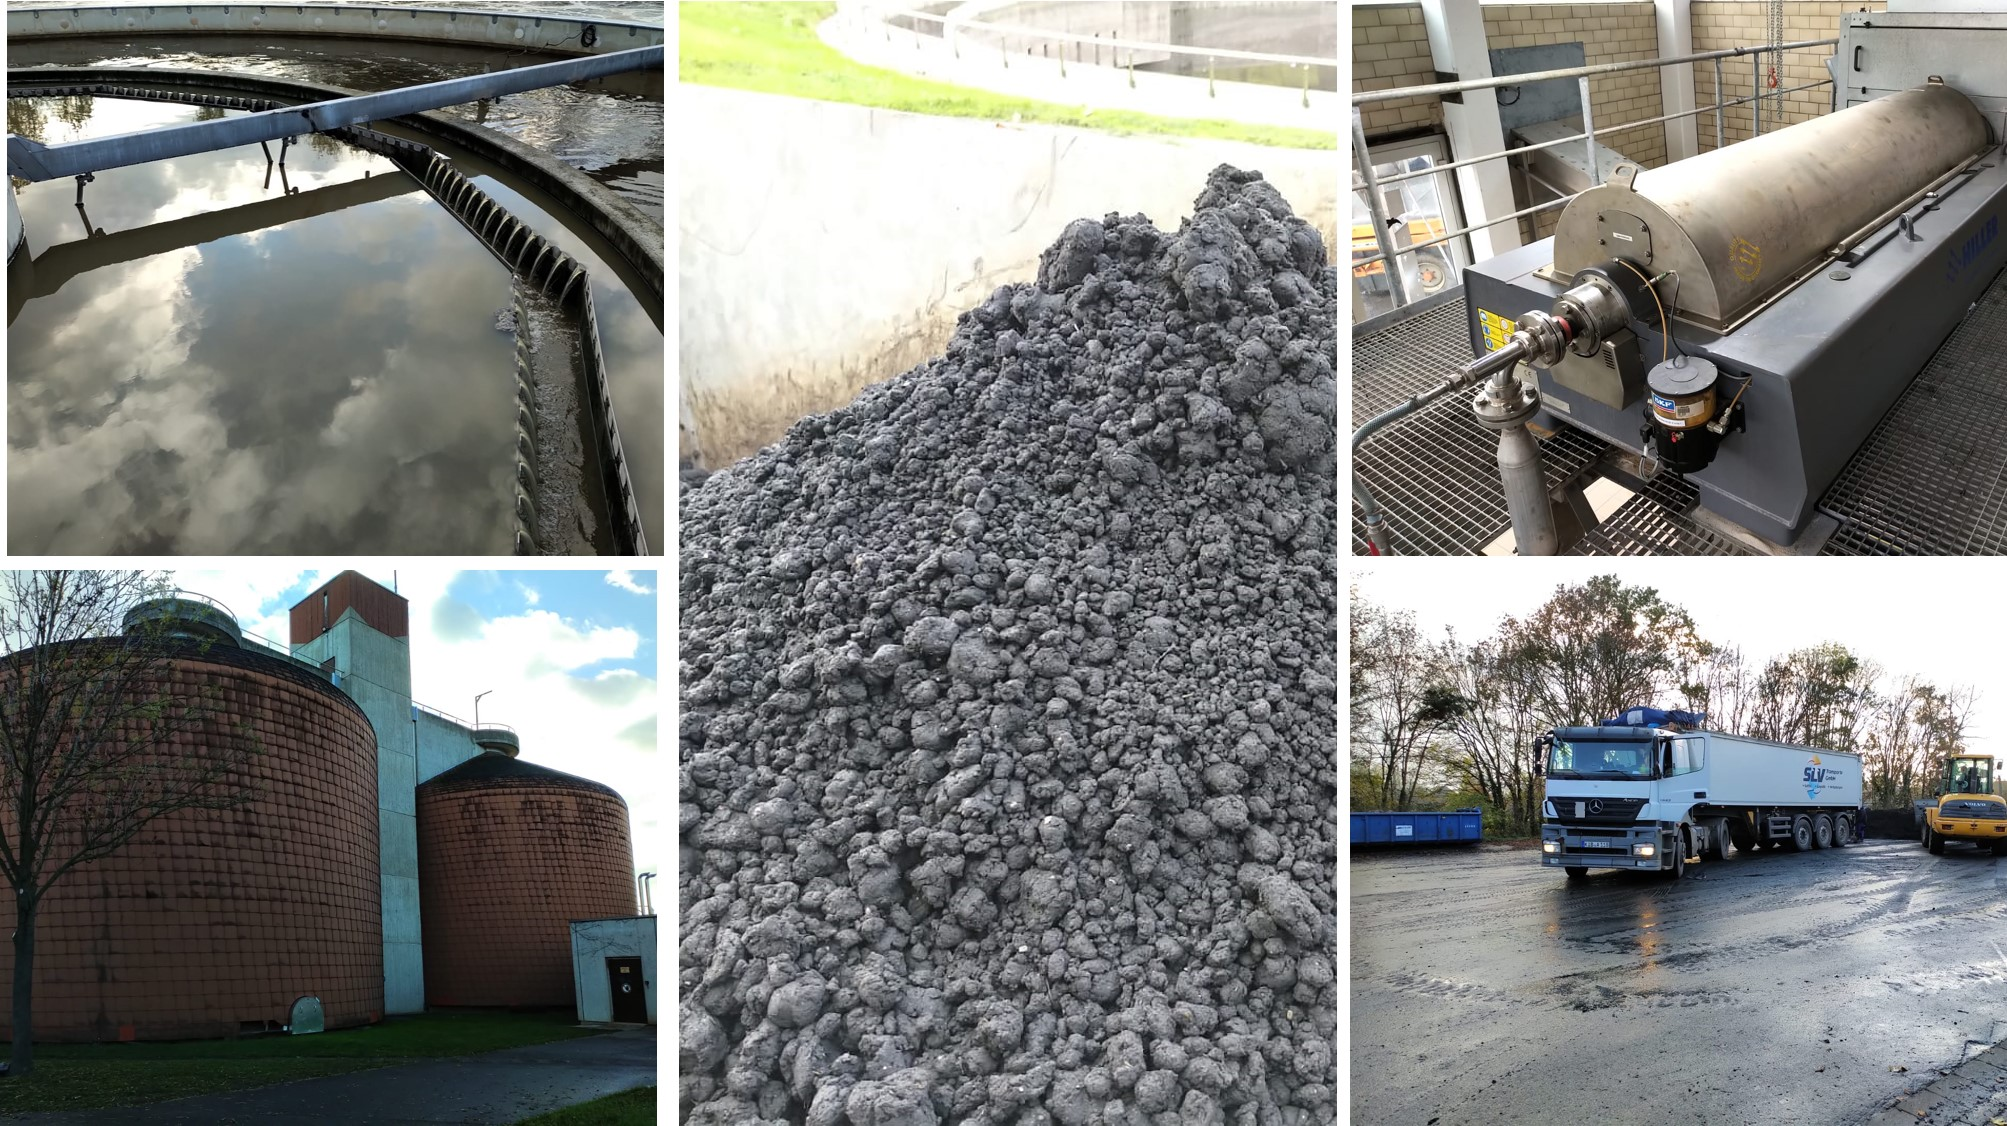 Sludge treatment in a wastewater treatment plant in Germany. Microplastics and micropollutants pollute our process sludges and prevent efficient reuse and recycling.